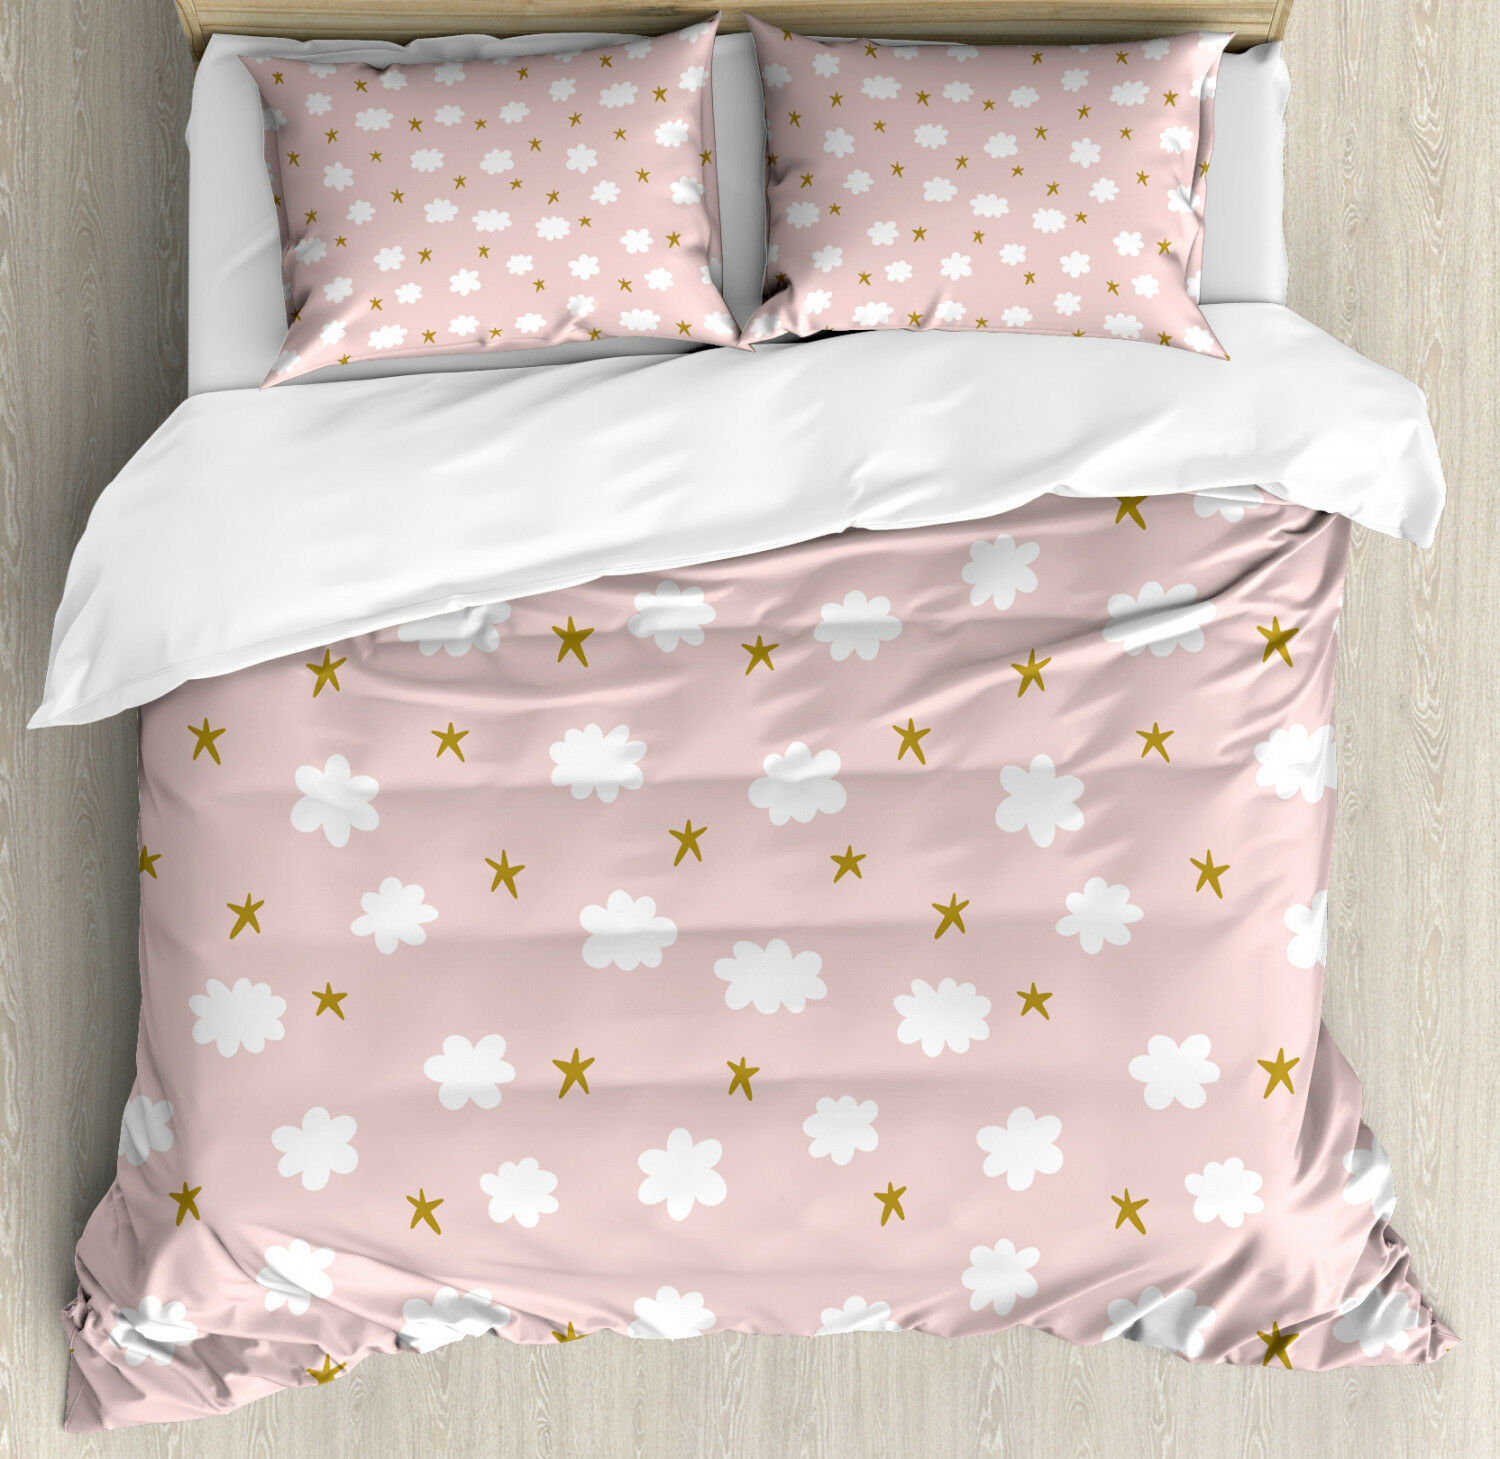 Baby Duvet Cover Set with Pillow Shams Stars and Clouds Pattern Print